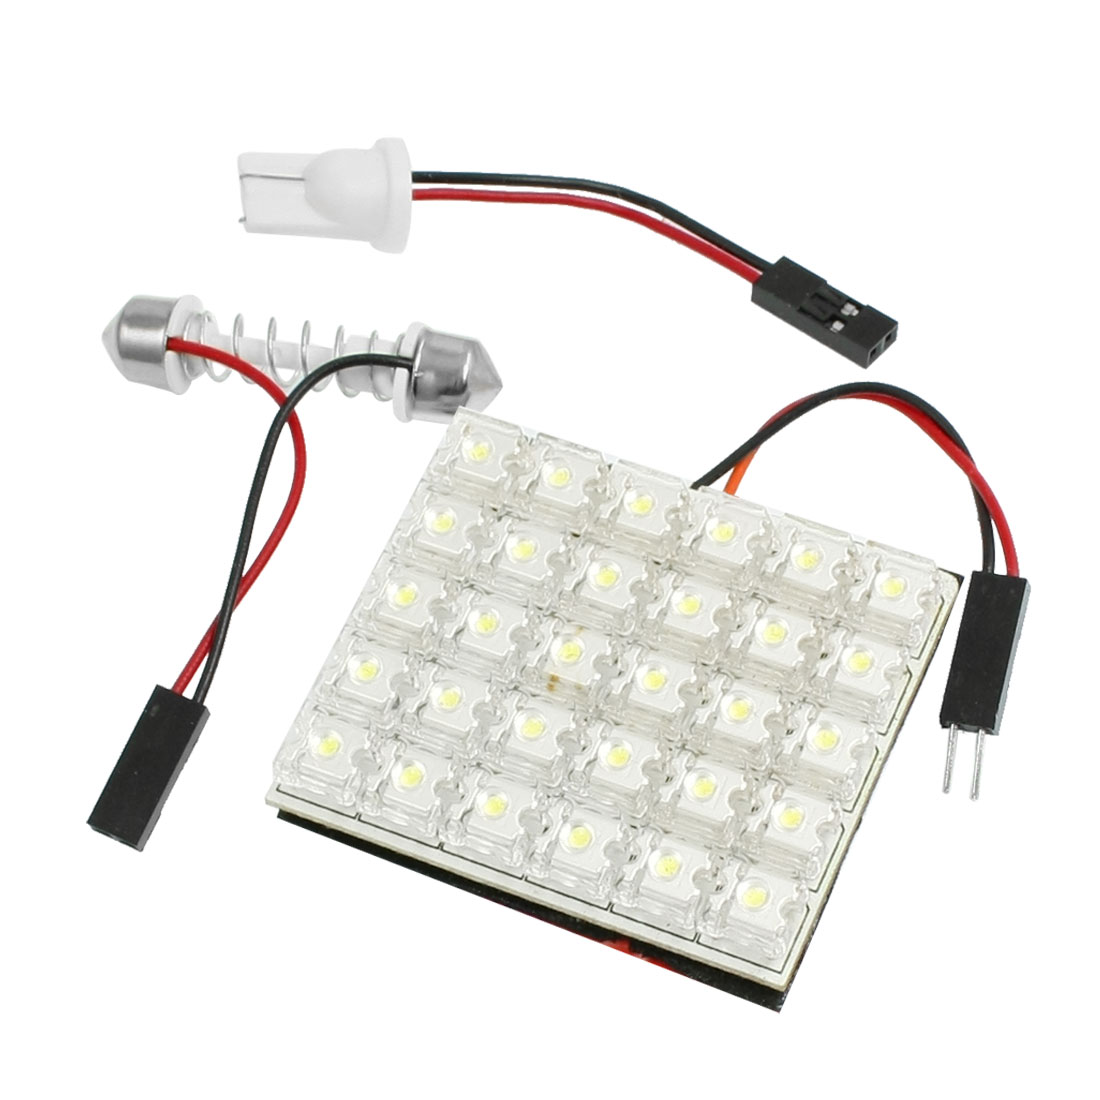 White Flux 30 LED Light Lamp + T10 Adpater + Festoon Base for Vehicle Truck